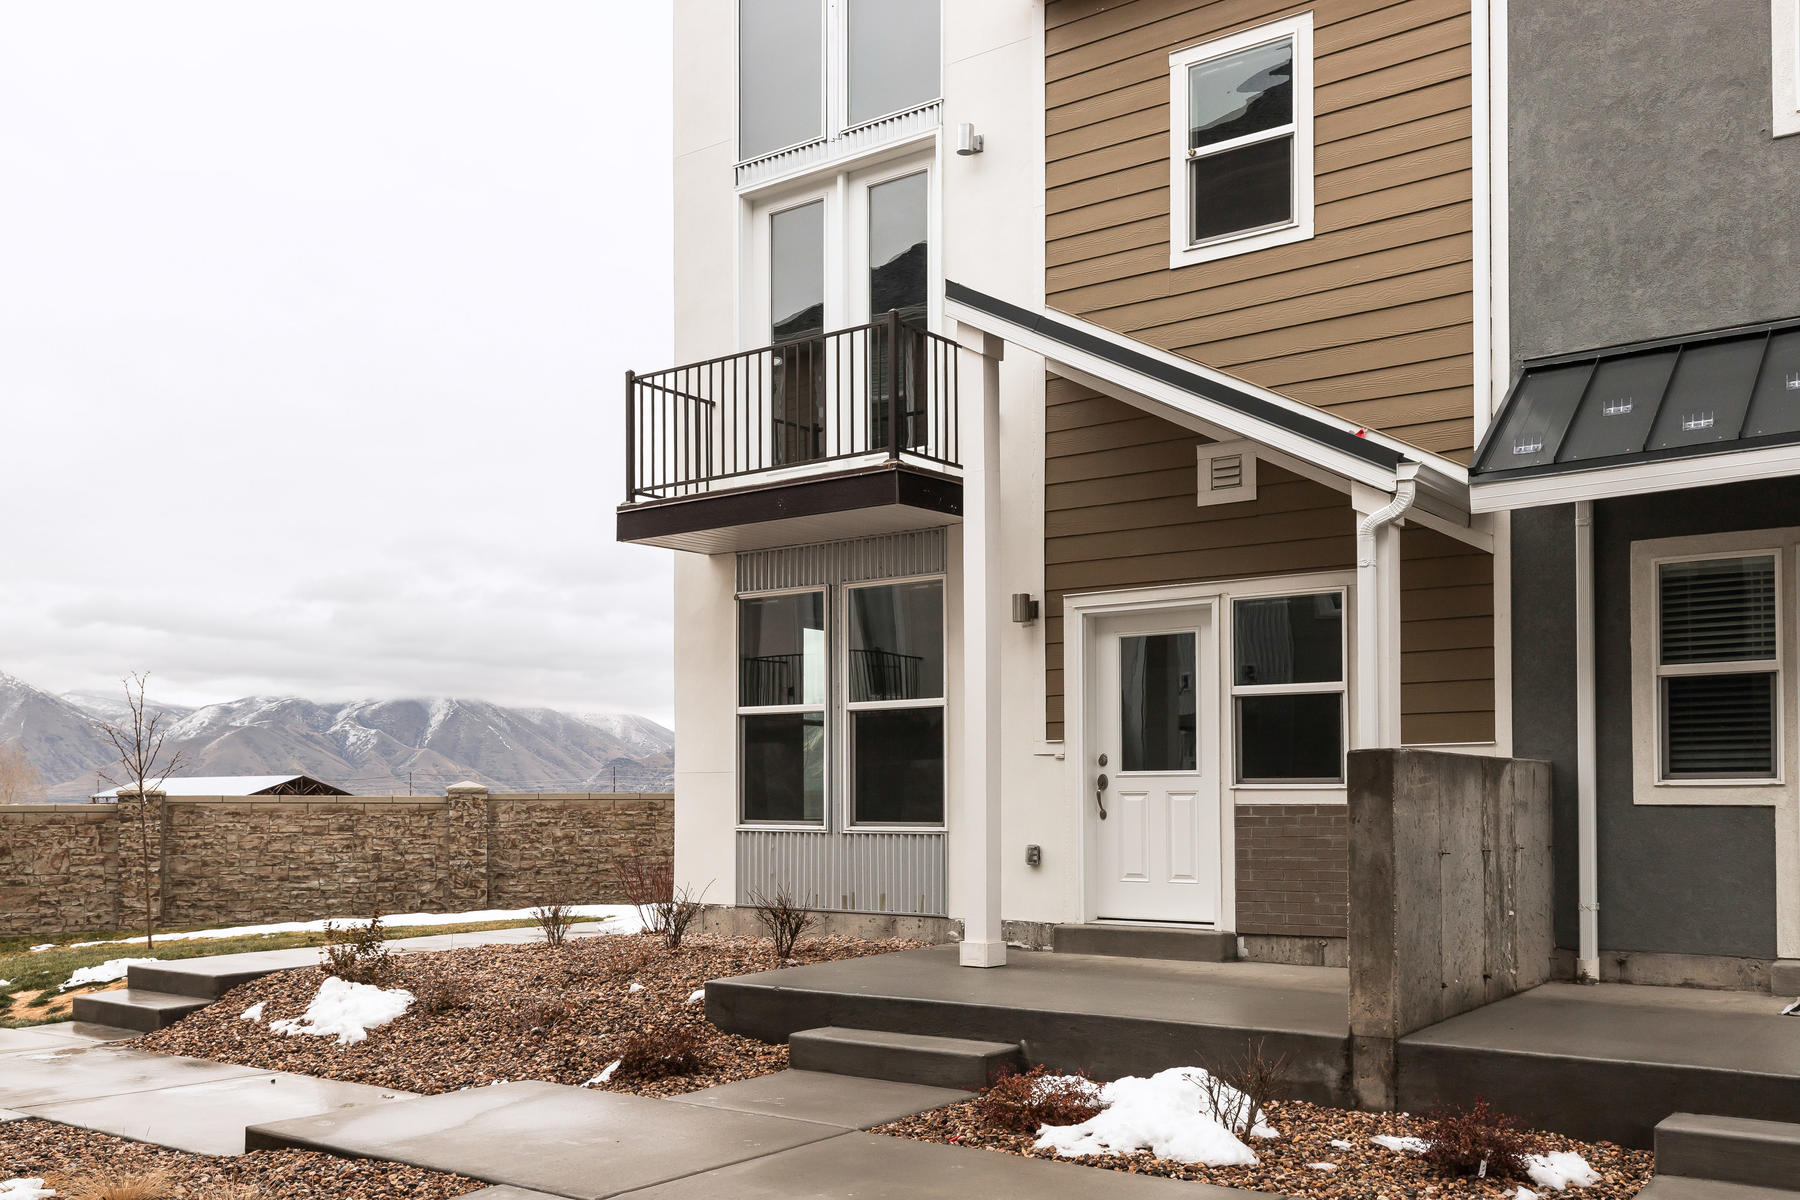 townhouses for Active at Beautiful End-Unit Townhome 902 South 2610 East Spanish Fork, Utah 84660 United States